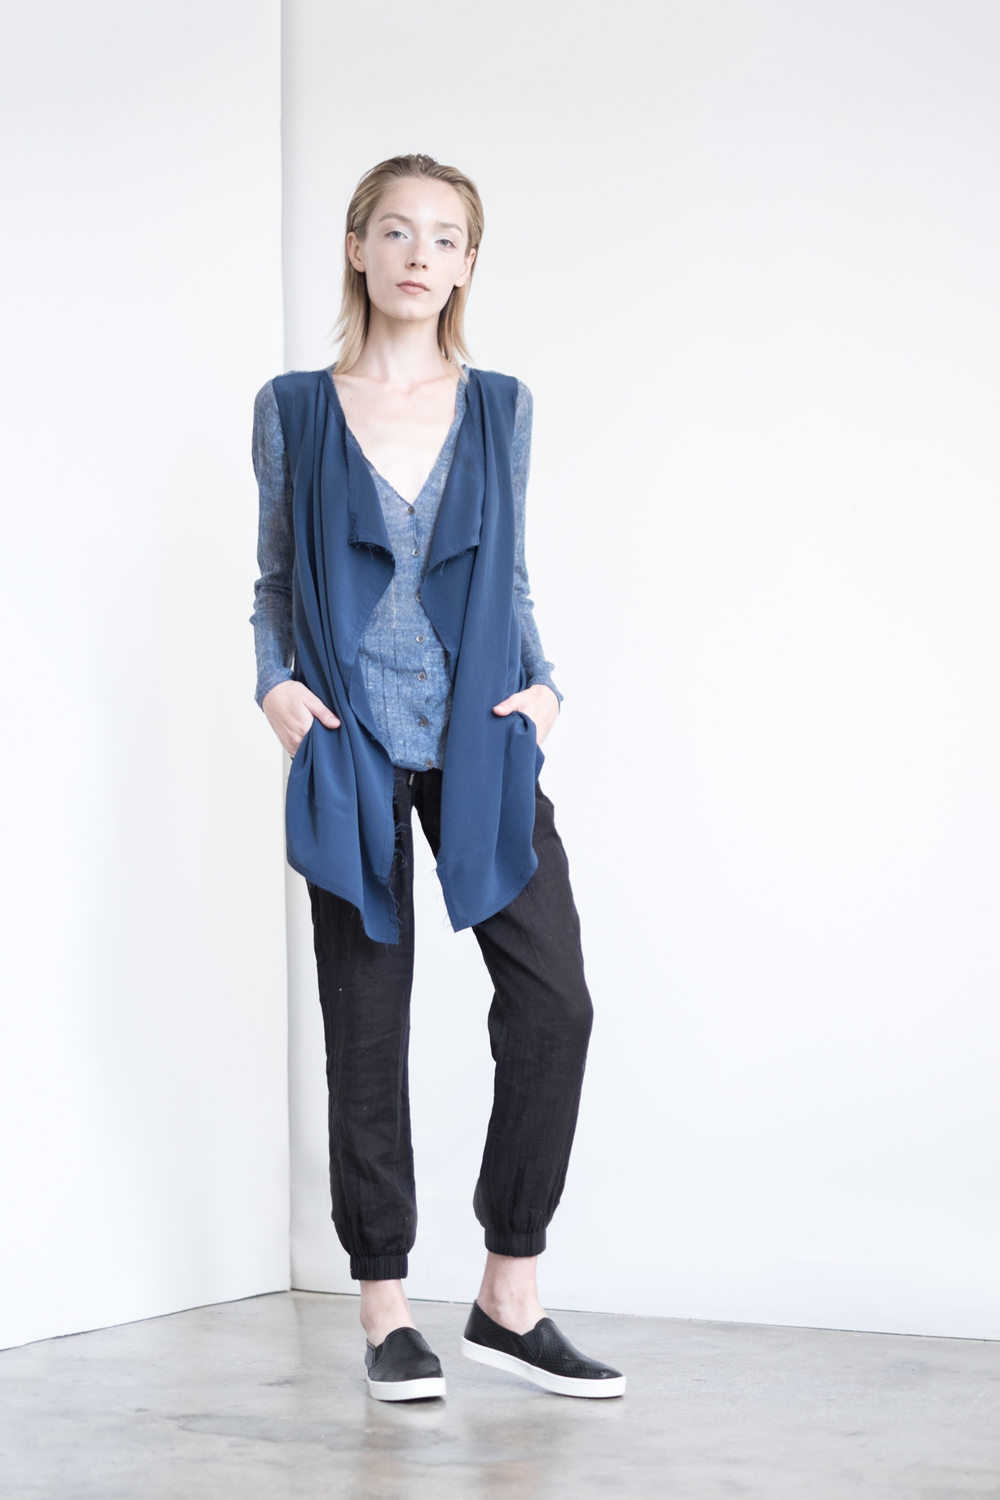 LOOK 38   TOP:   2279  / Denim   -     Linen Vee cardigan with silk crepe de chine drape front.   BOTTOM:   2290  / Noir  -   Jogger pants in 100% Cottong woven dbl. layer gauze.